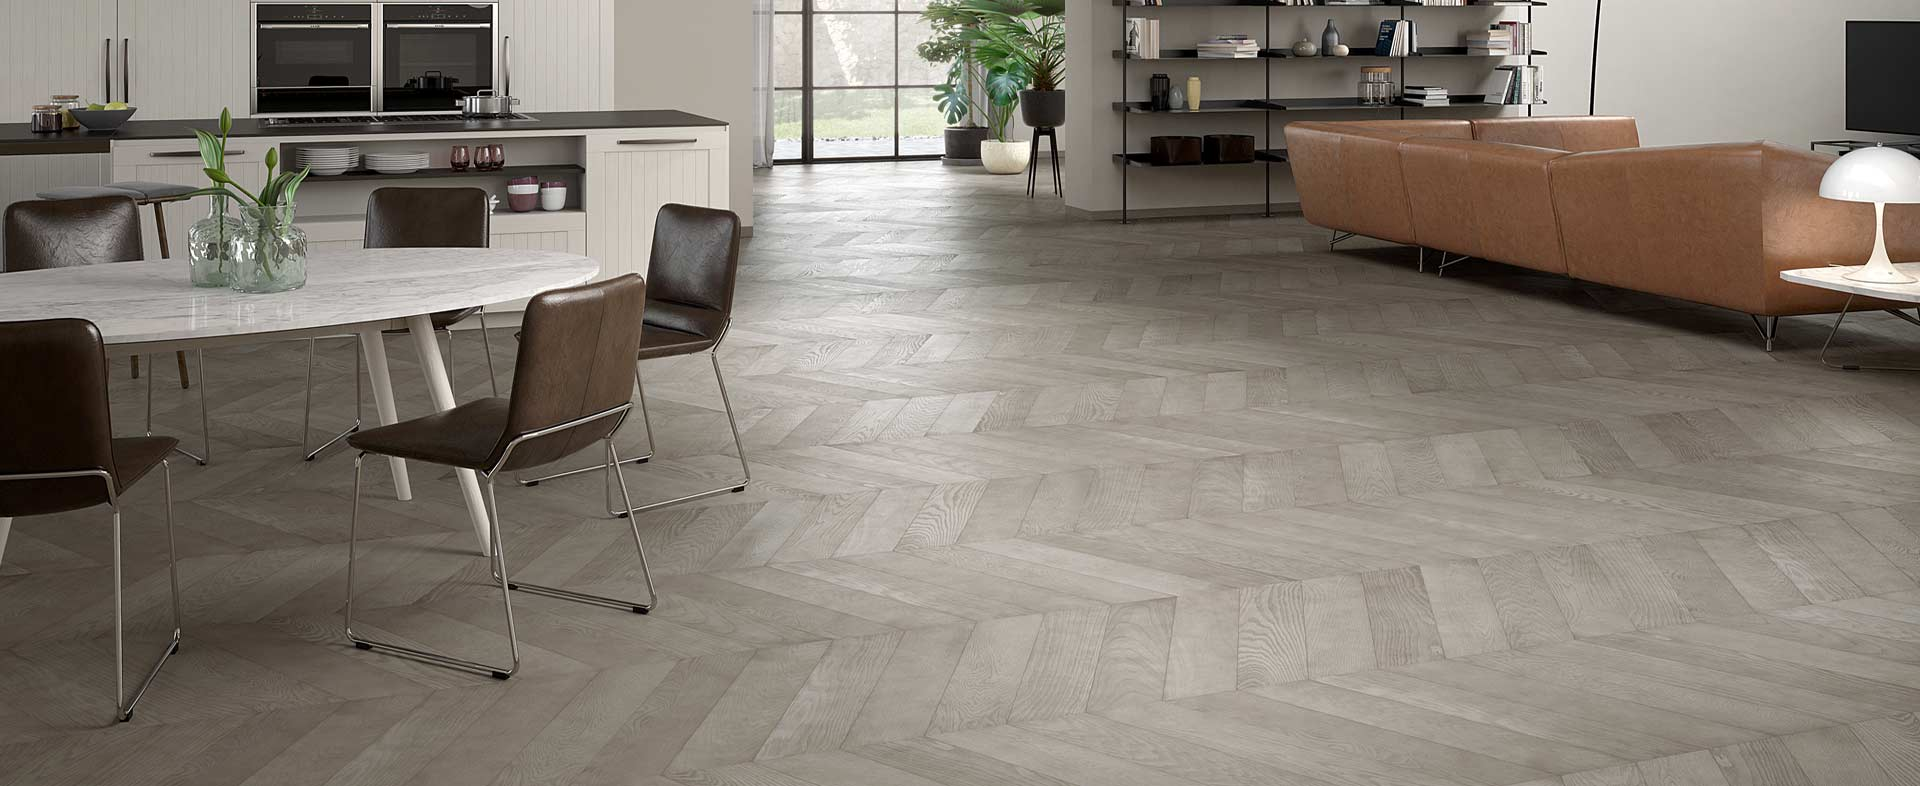 Turtledove Oak Planks Chevron 60°